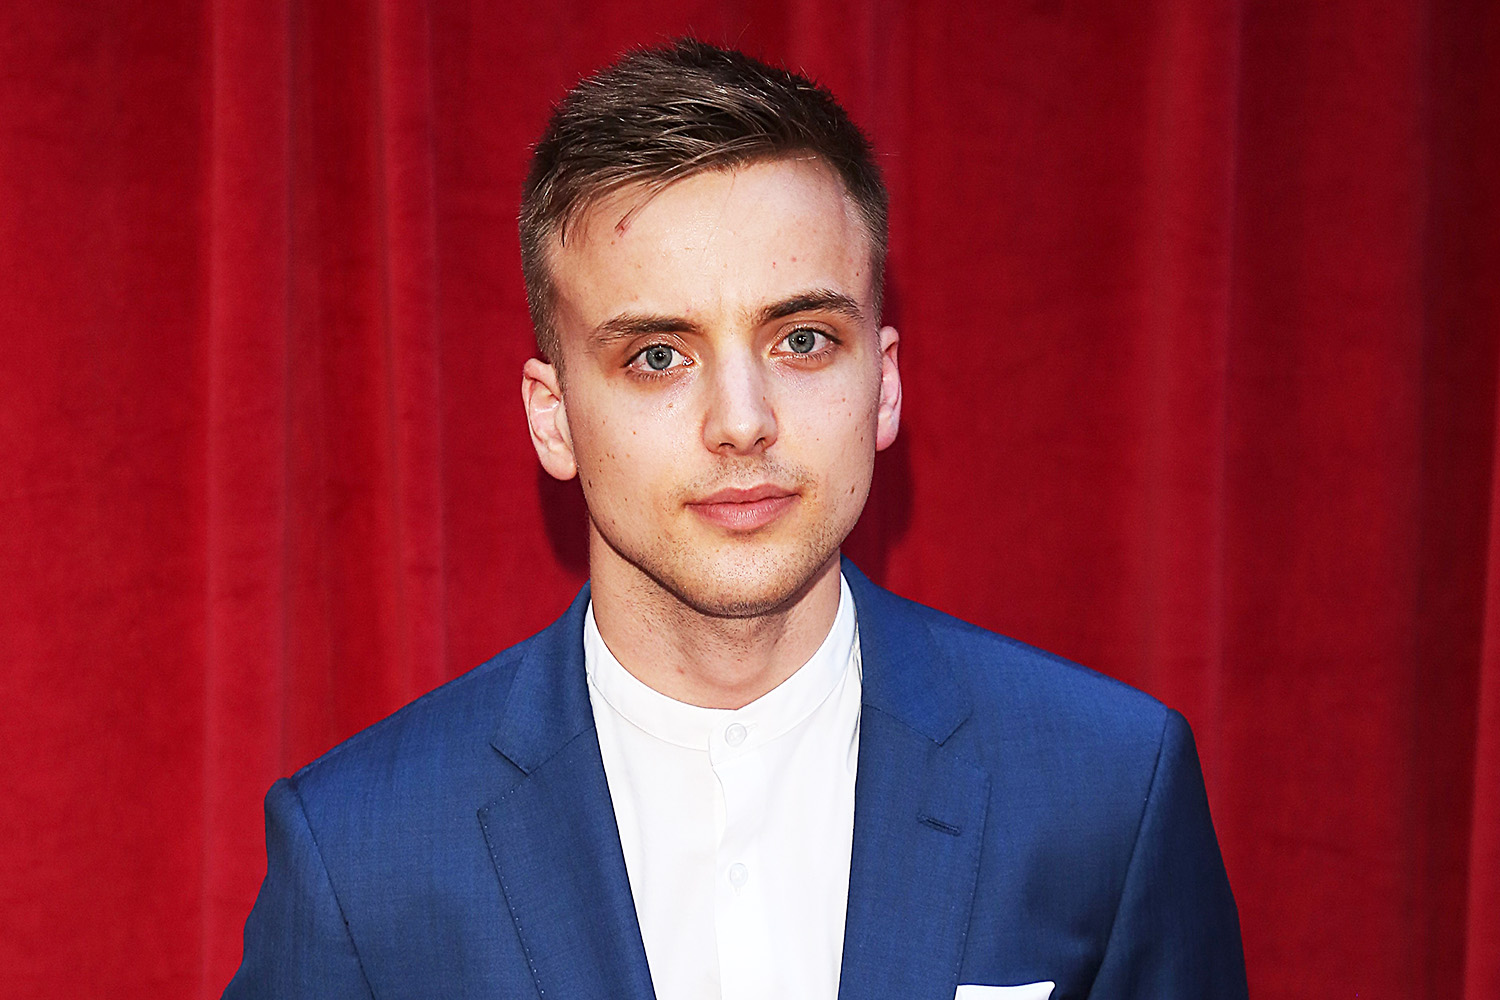 Former Hollyoaks star Parry Glasspool engaged after romantic proposal to girlfriend